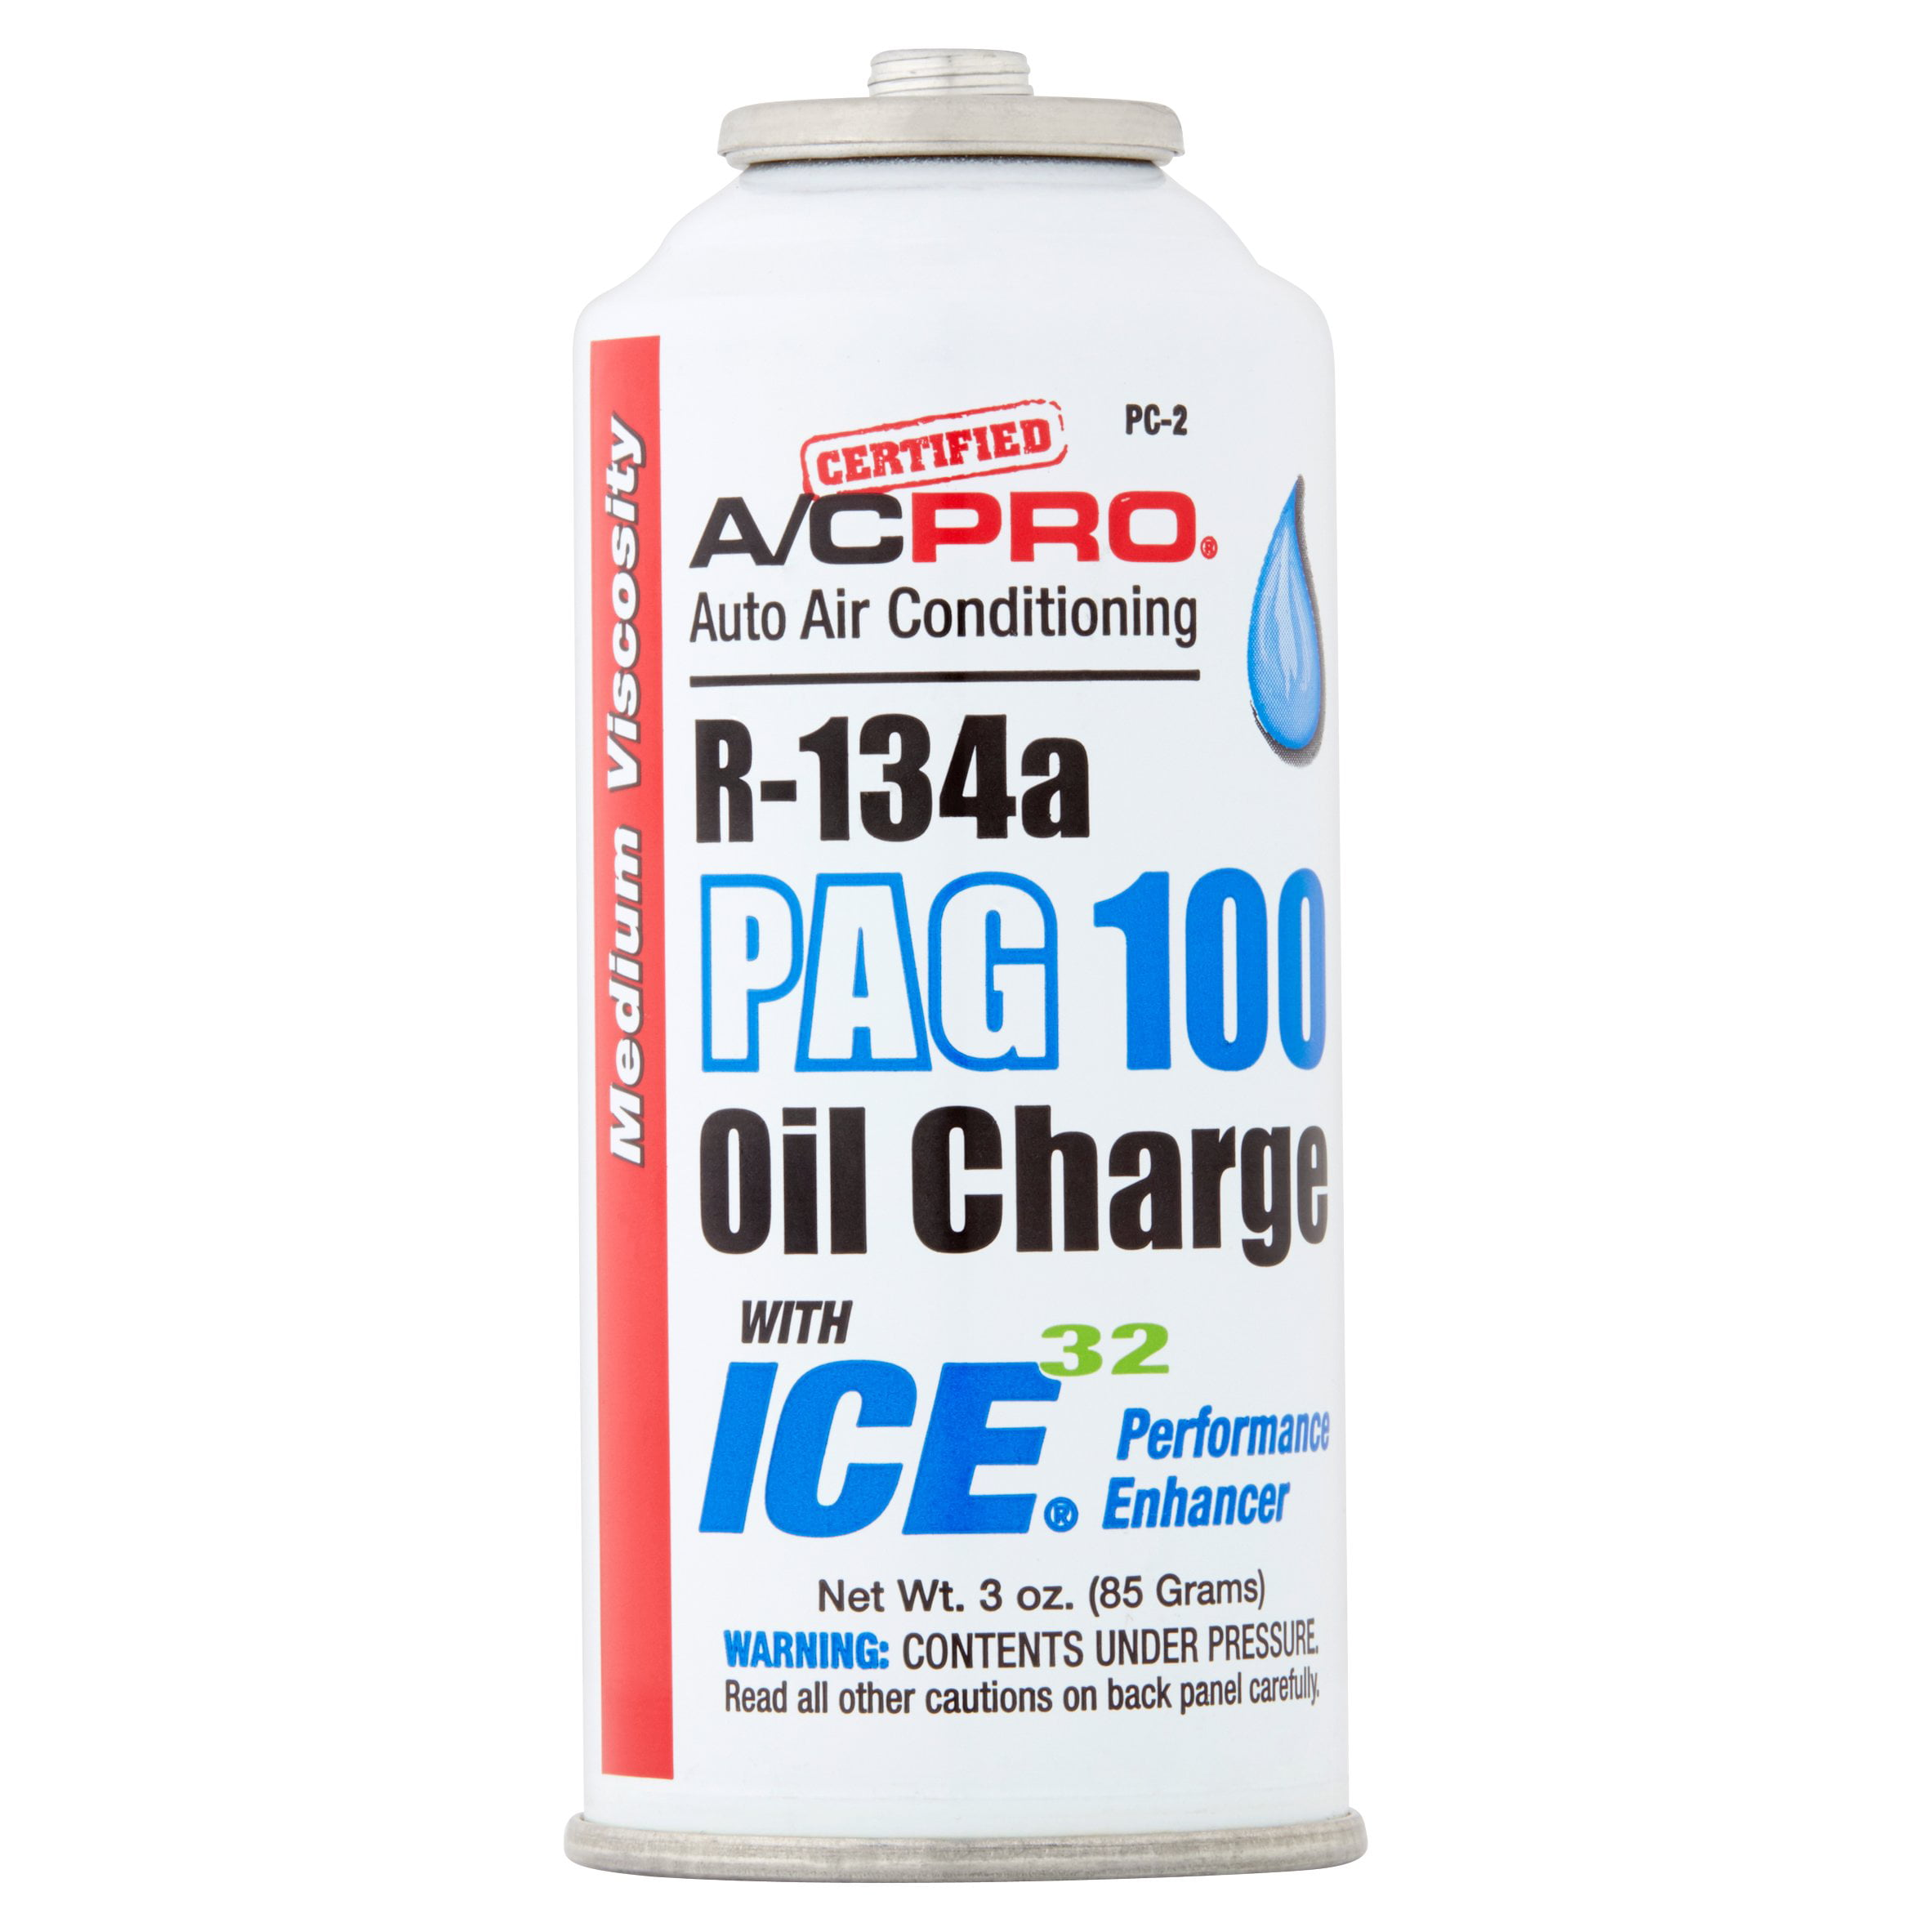 A/C Pro Auto Air Conditioning R-134a PAG 100 with Ice 32 Oil Charge